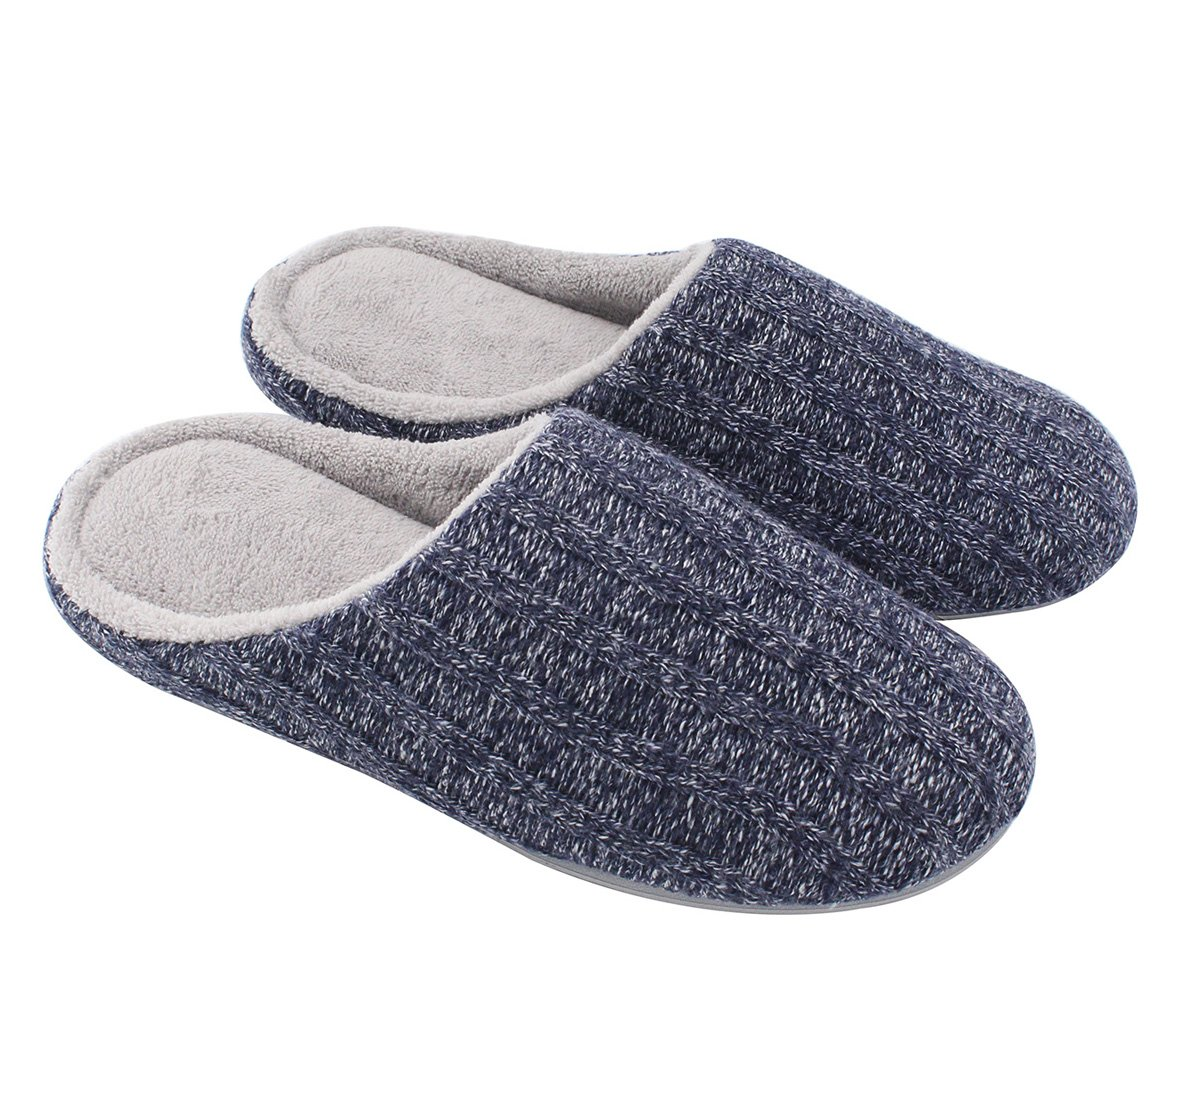 HomeIdeas Women's Cashmere Cotton Knitted Anti-slip House Slippers, Winter Breathable Indoor Shoes , Navy Blue , Large / 9-10 B(M) US